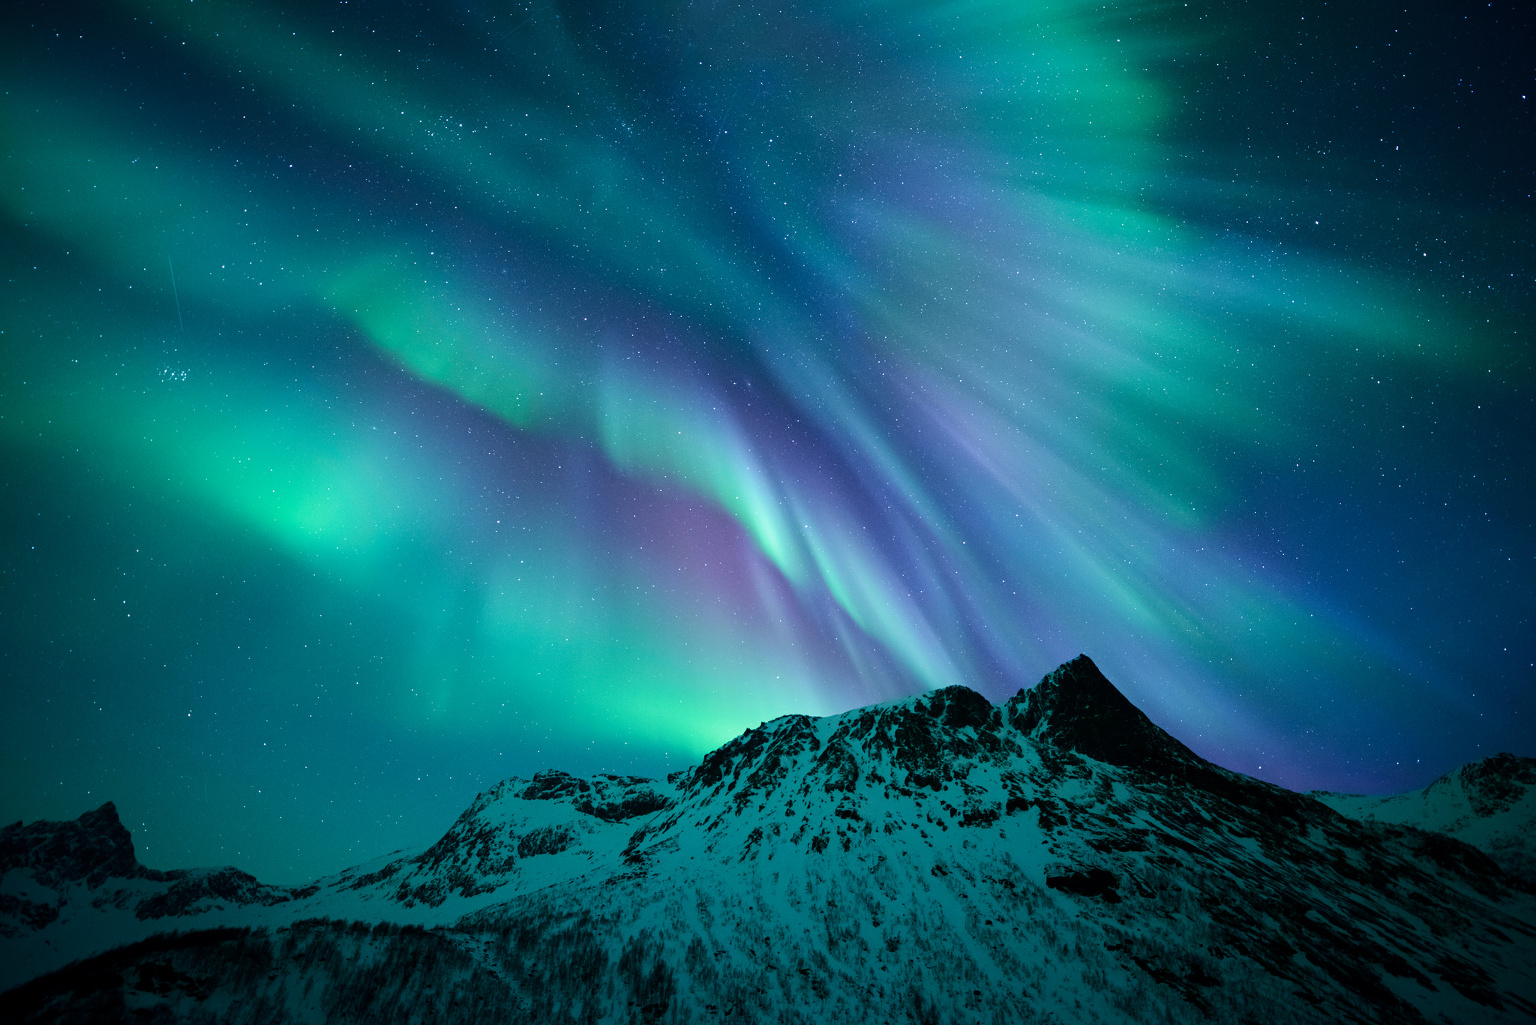 Motind is a hill in Troms. Living in Norway, the photographer has seen his fair share of aurorae, but on 21 January 2015 he witnessed the strongest variety of colours he had ever set eyes on in this beautiful explosion of purples and greens. Careening over the peaks of Senja, oxygen produces the greens and nitrogen the purples, seen in this particular display of the Northern Lights. Image credit: © RuneEngebo / RoyalMuseumsGreenwich. (Click image for full-size version.)